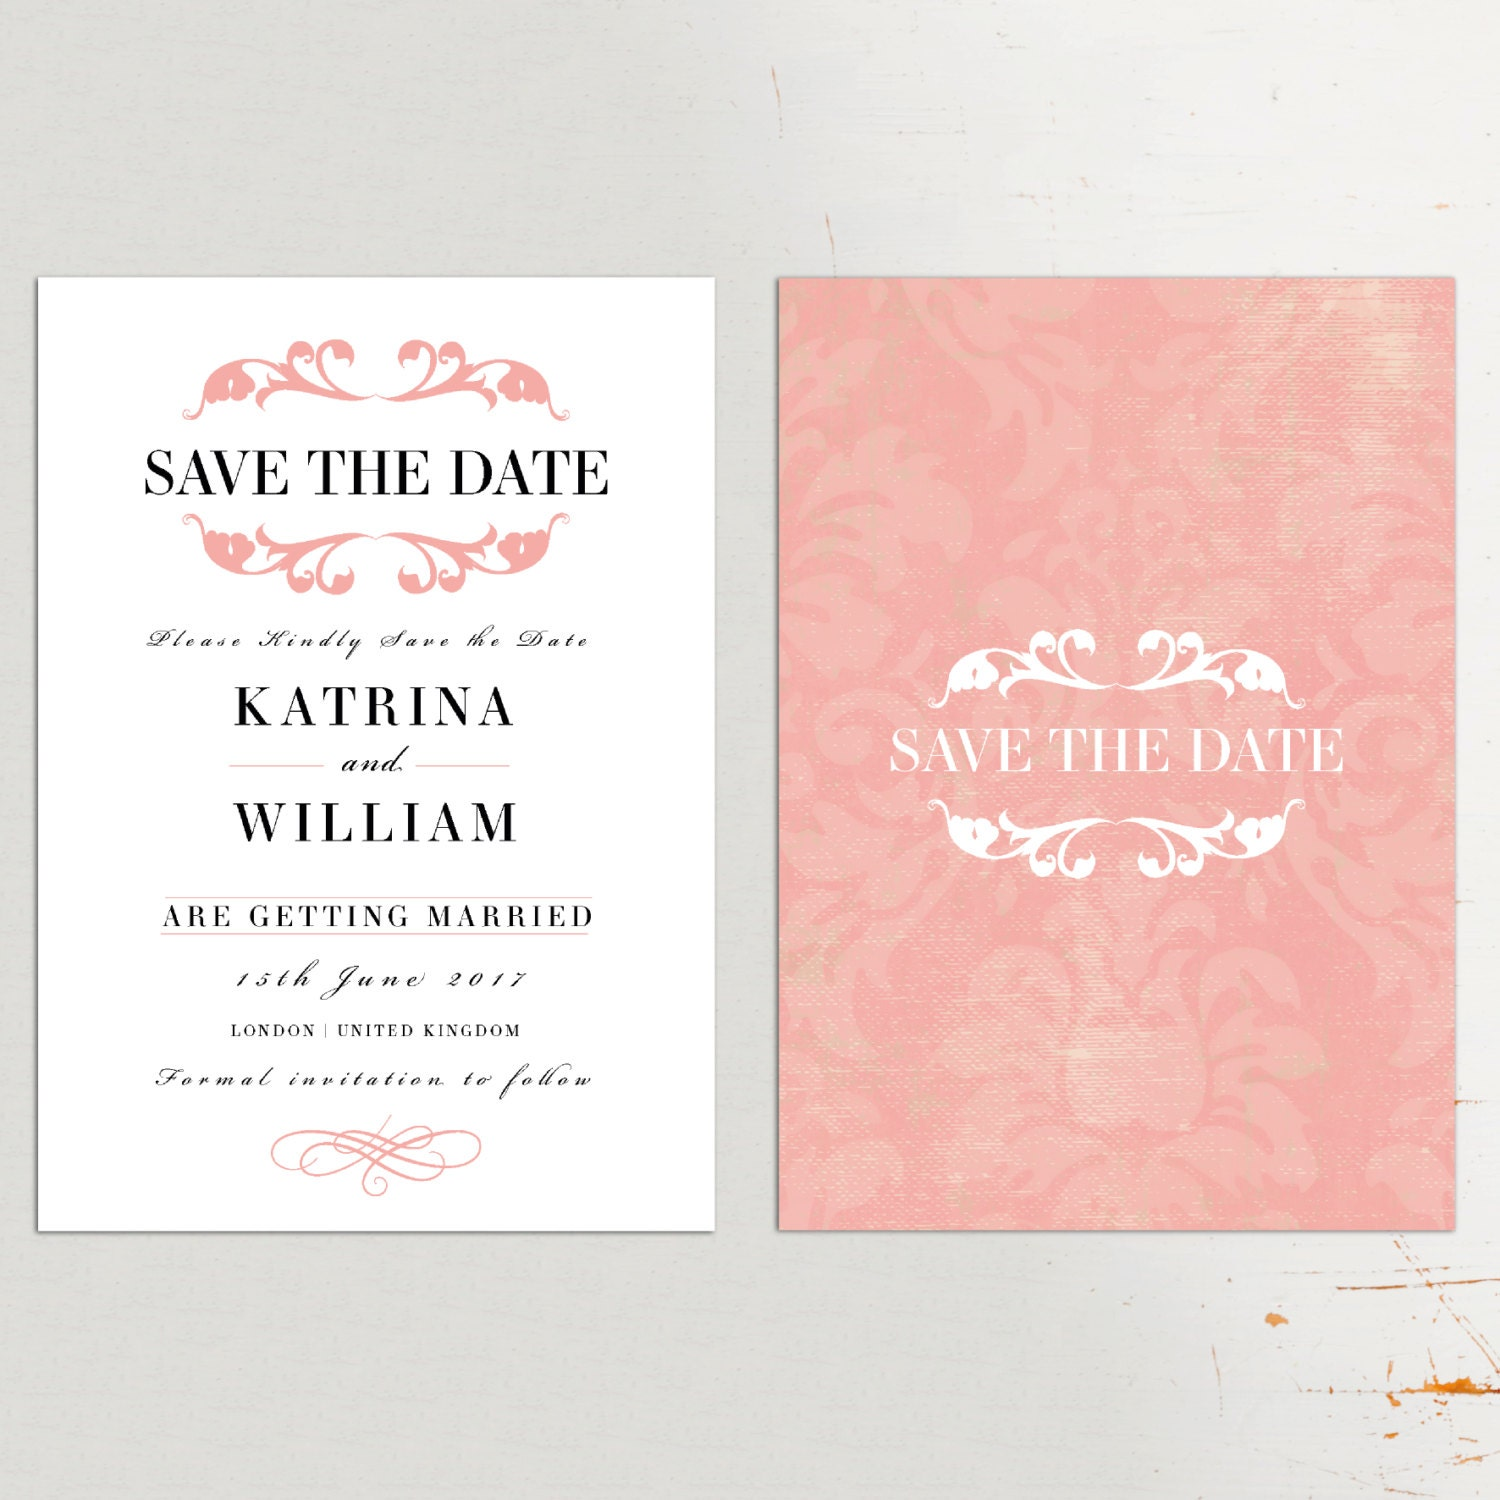 Save the Date Cards Wedding Save the Date Wedding Suite UK – Save the Date Card Wedding